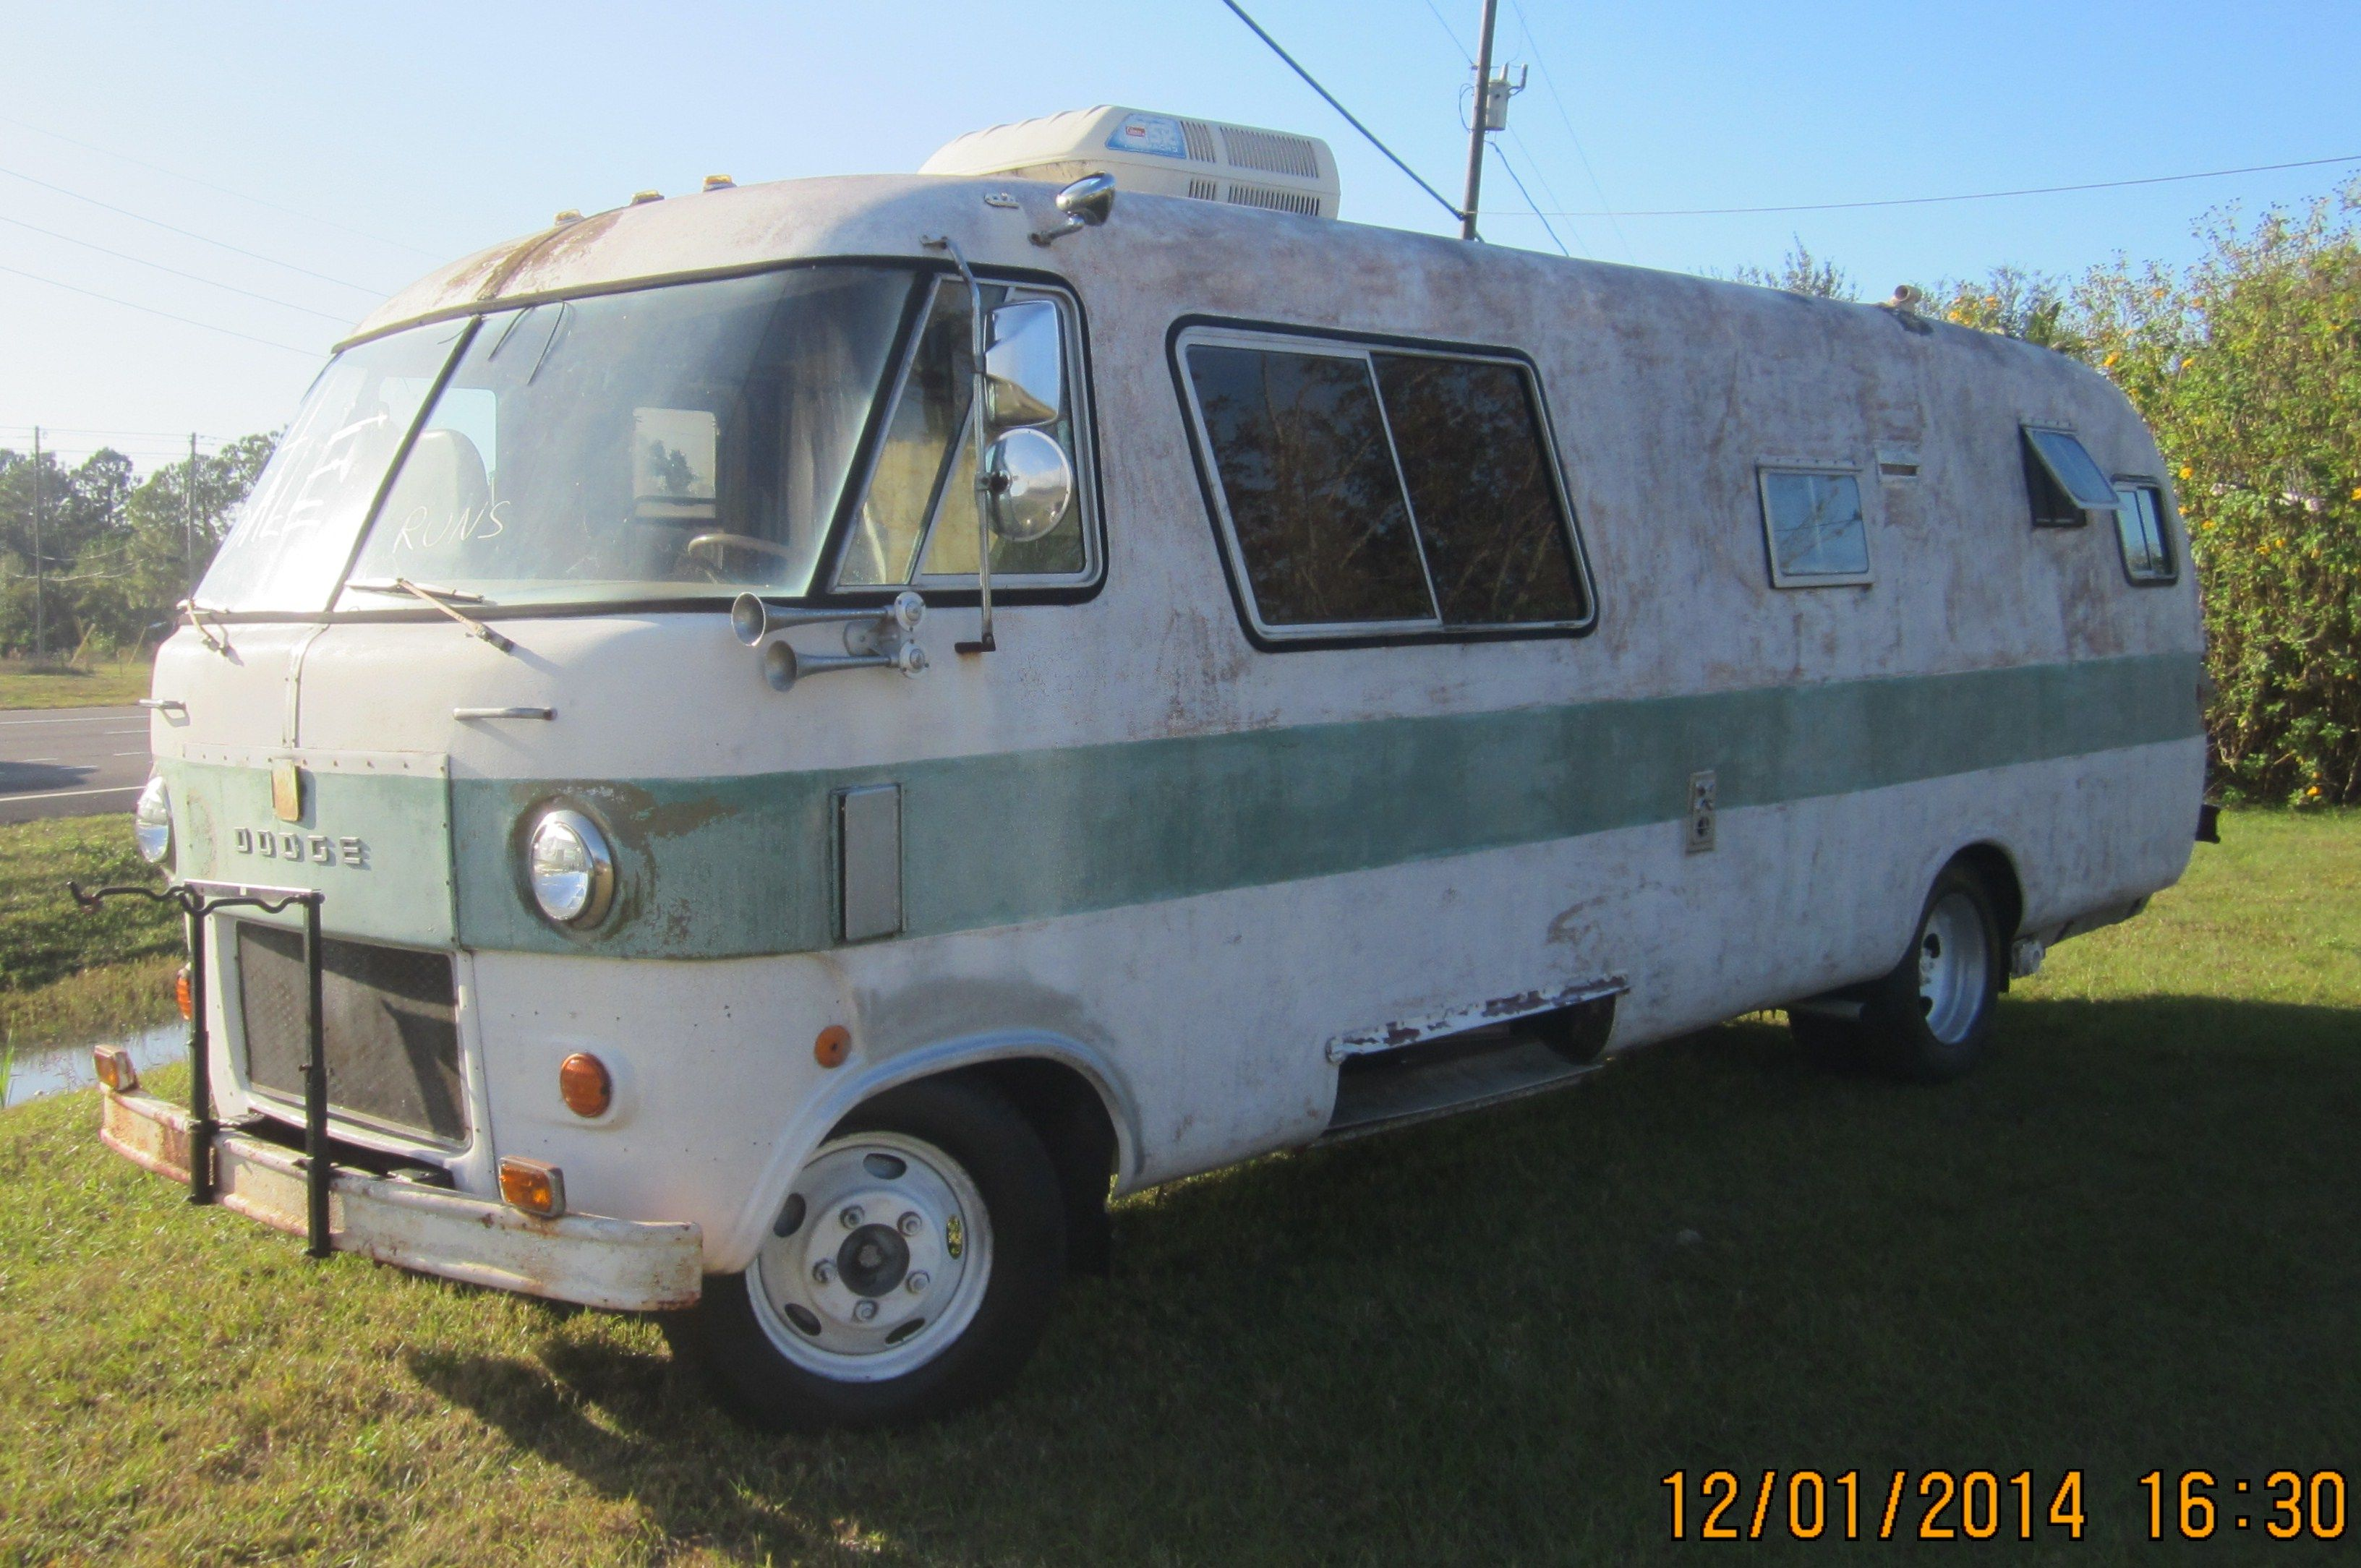 1970 Travco 270 Dodge Motor Home SN 147  413 V8 power  | Off